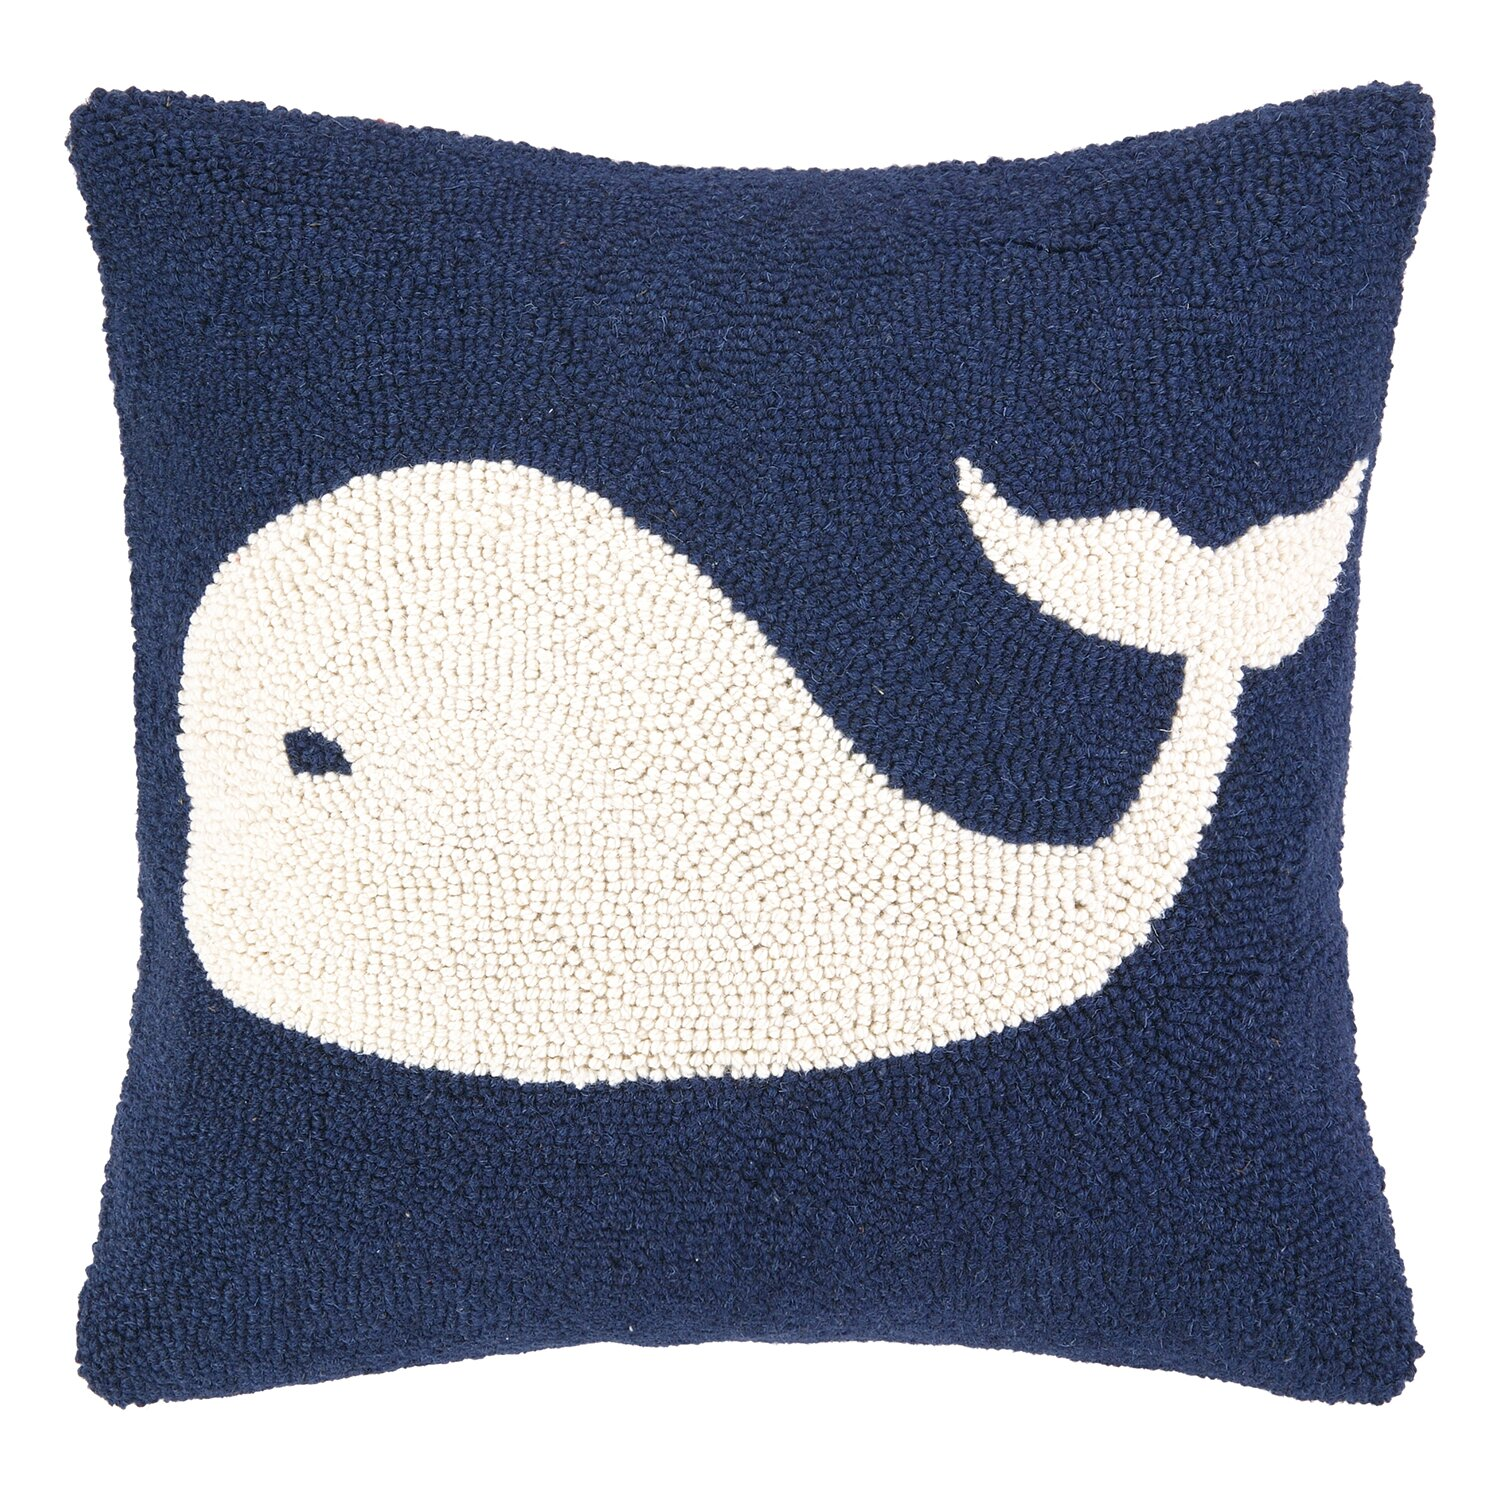 Throw Pillows Nordstrom : Peking Handicraft Nautical Hook Whale Throw Pillow & Reviews Wayfair